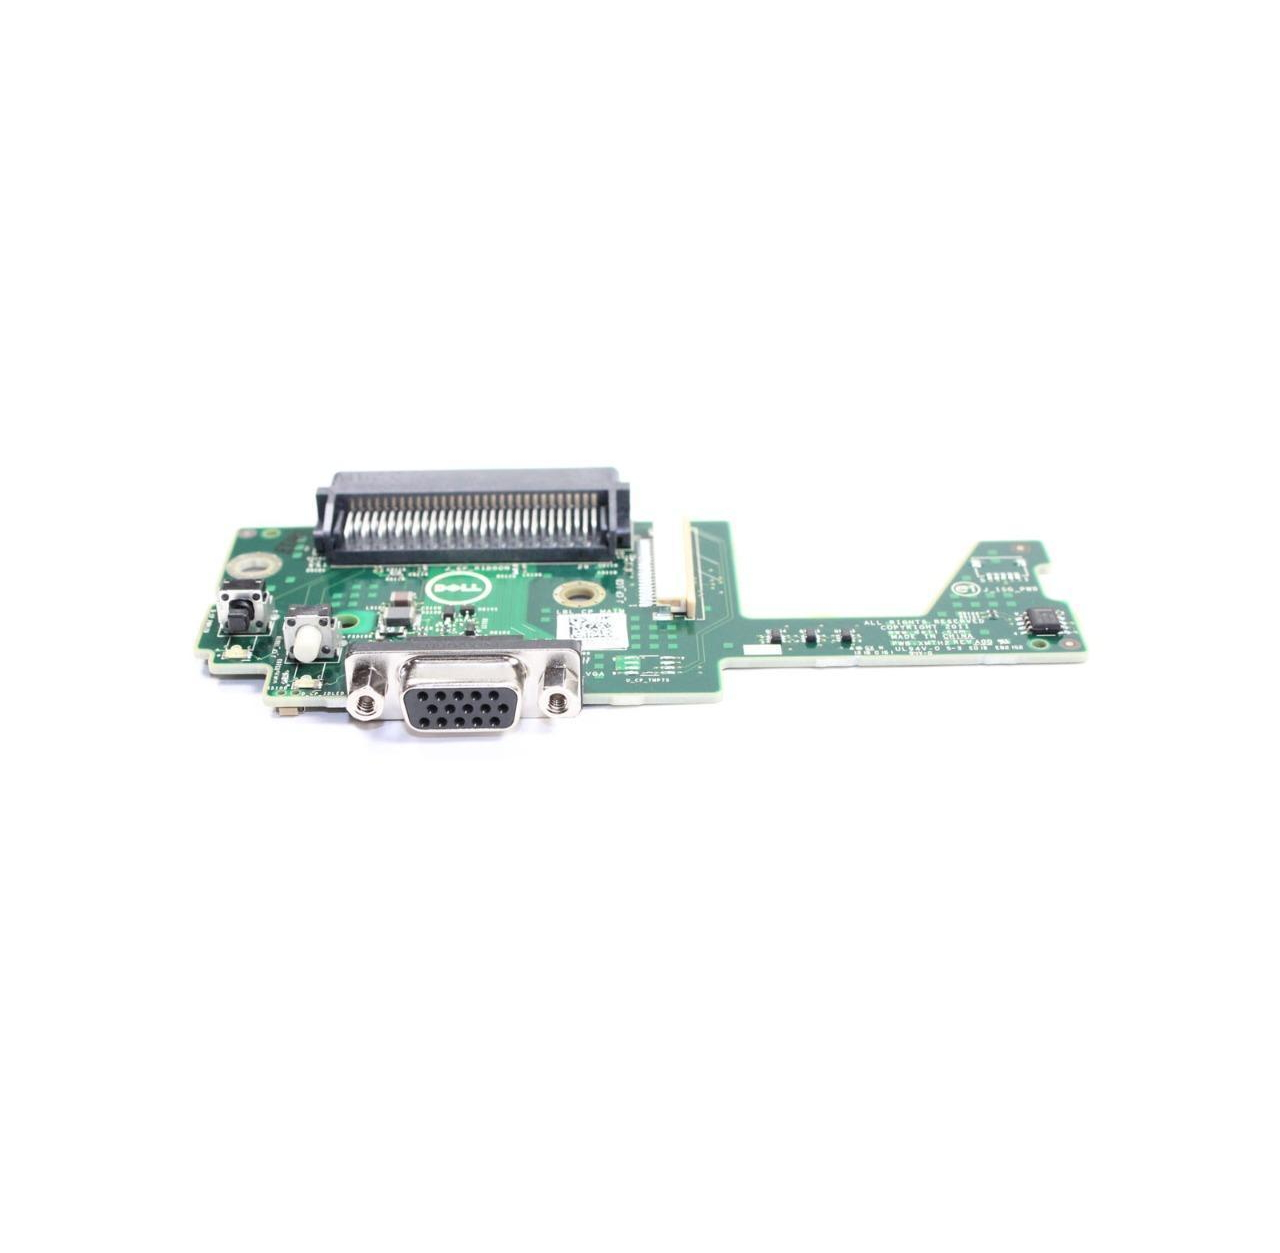 Dell PowerEdge R720 Front Control Panel Board 0X1H10 09V3WV